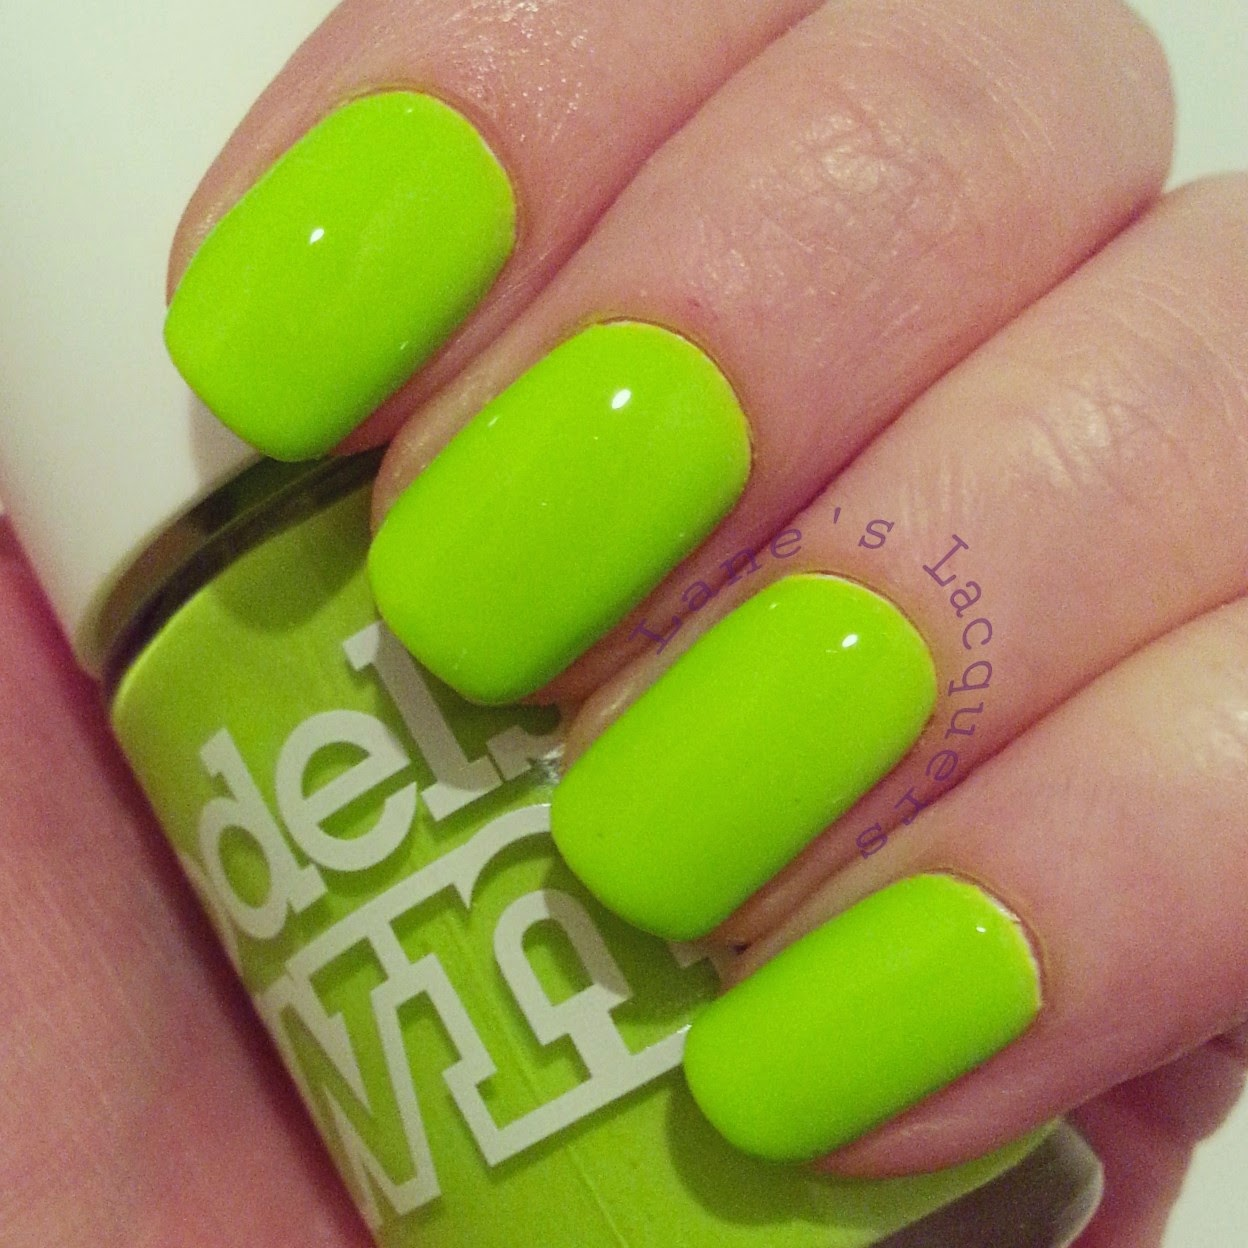 models-own-polish-for-tans-flip-flop-swatch-nails